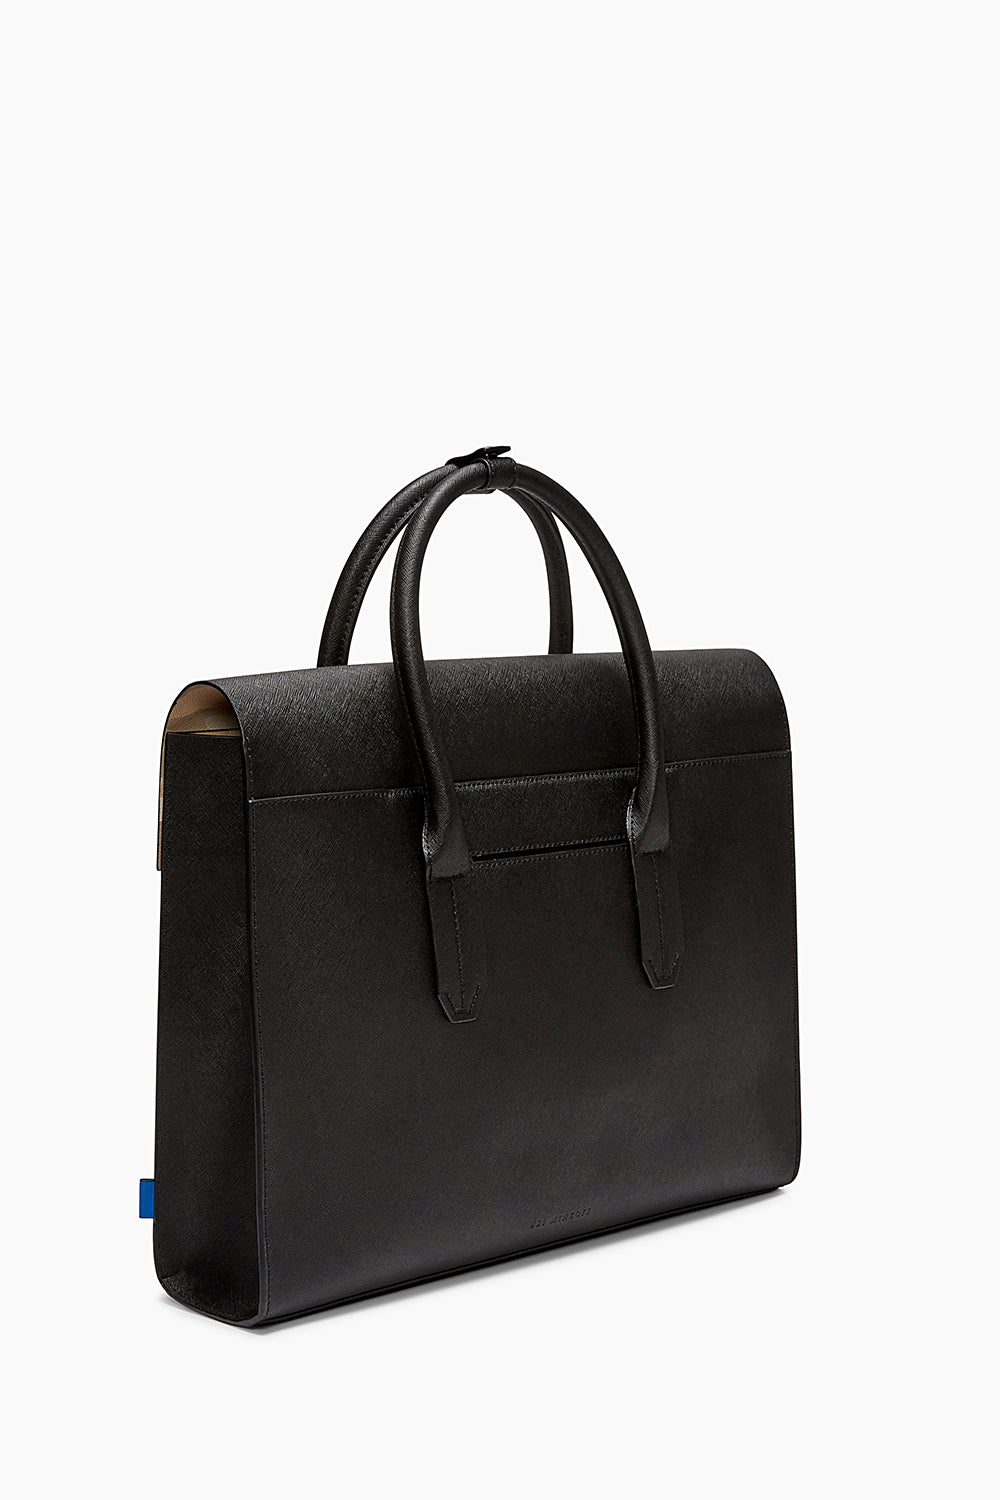 Murray Carryall